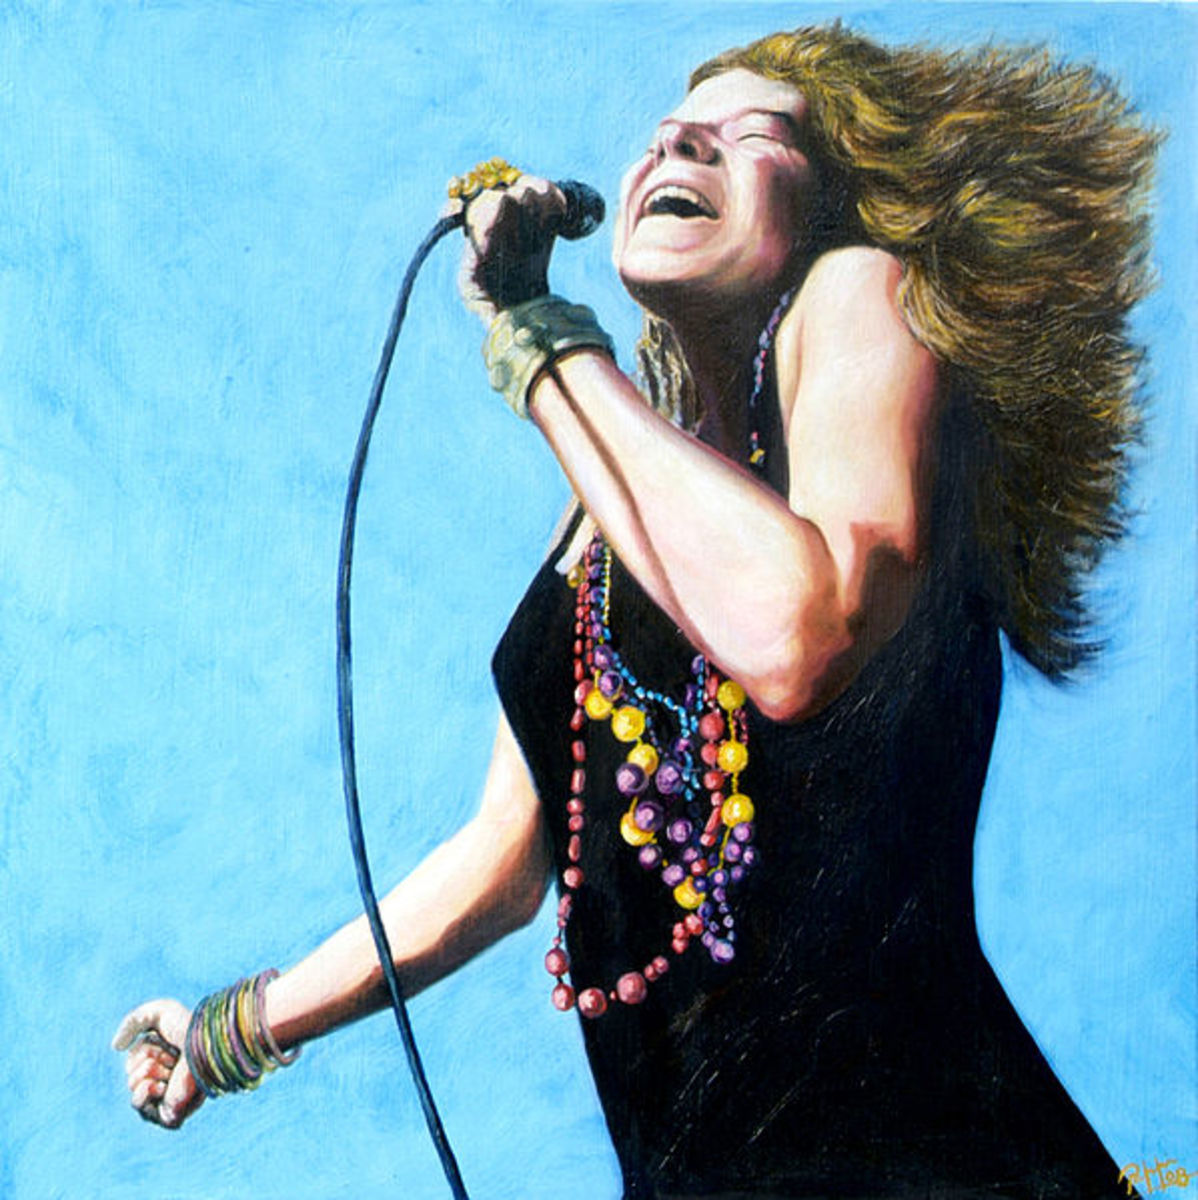 The first successful female rock singer, Janis Joplin, died at the age of 27 from a heroin overdose.